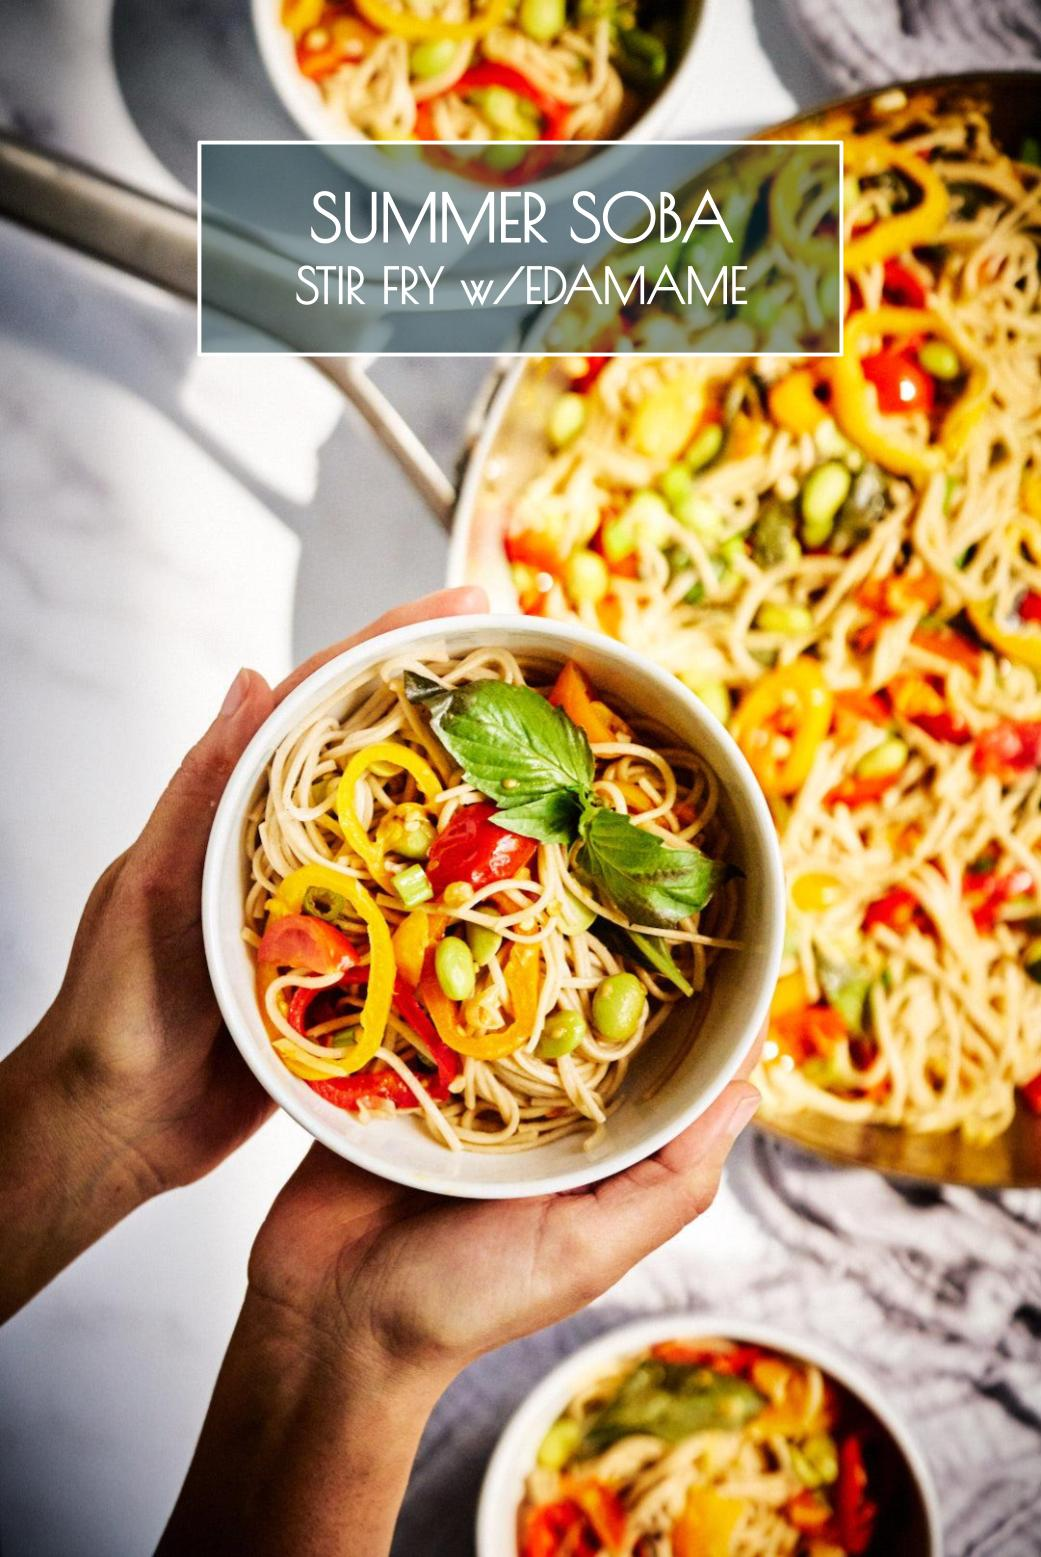 Soba Noodle Stir Fry with Edamame | Soba noodle stir fry w/summer veggies brings together unexpected flavors in a magical way. The perfect marriage of east and west & it\'s ready in 20 minutes! #noodles #stirfry #soba #quickdinner